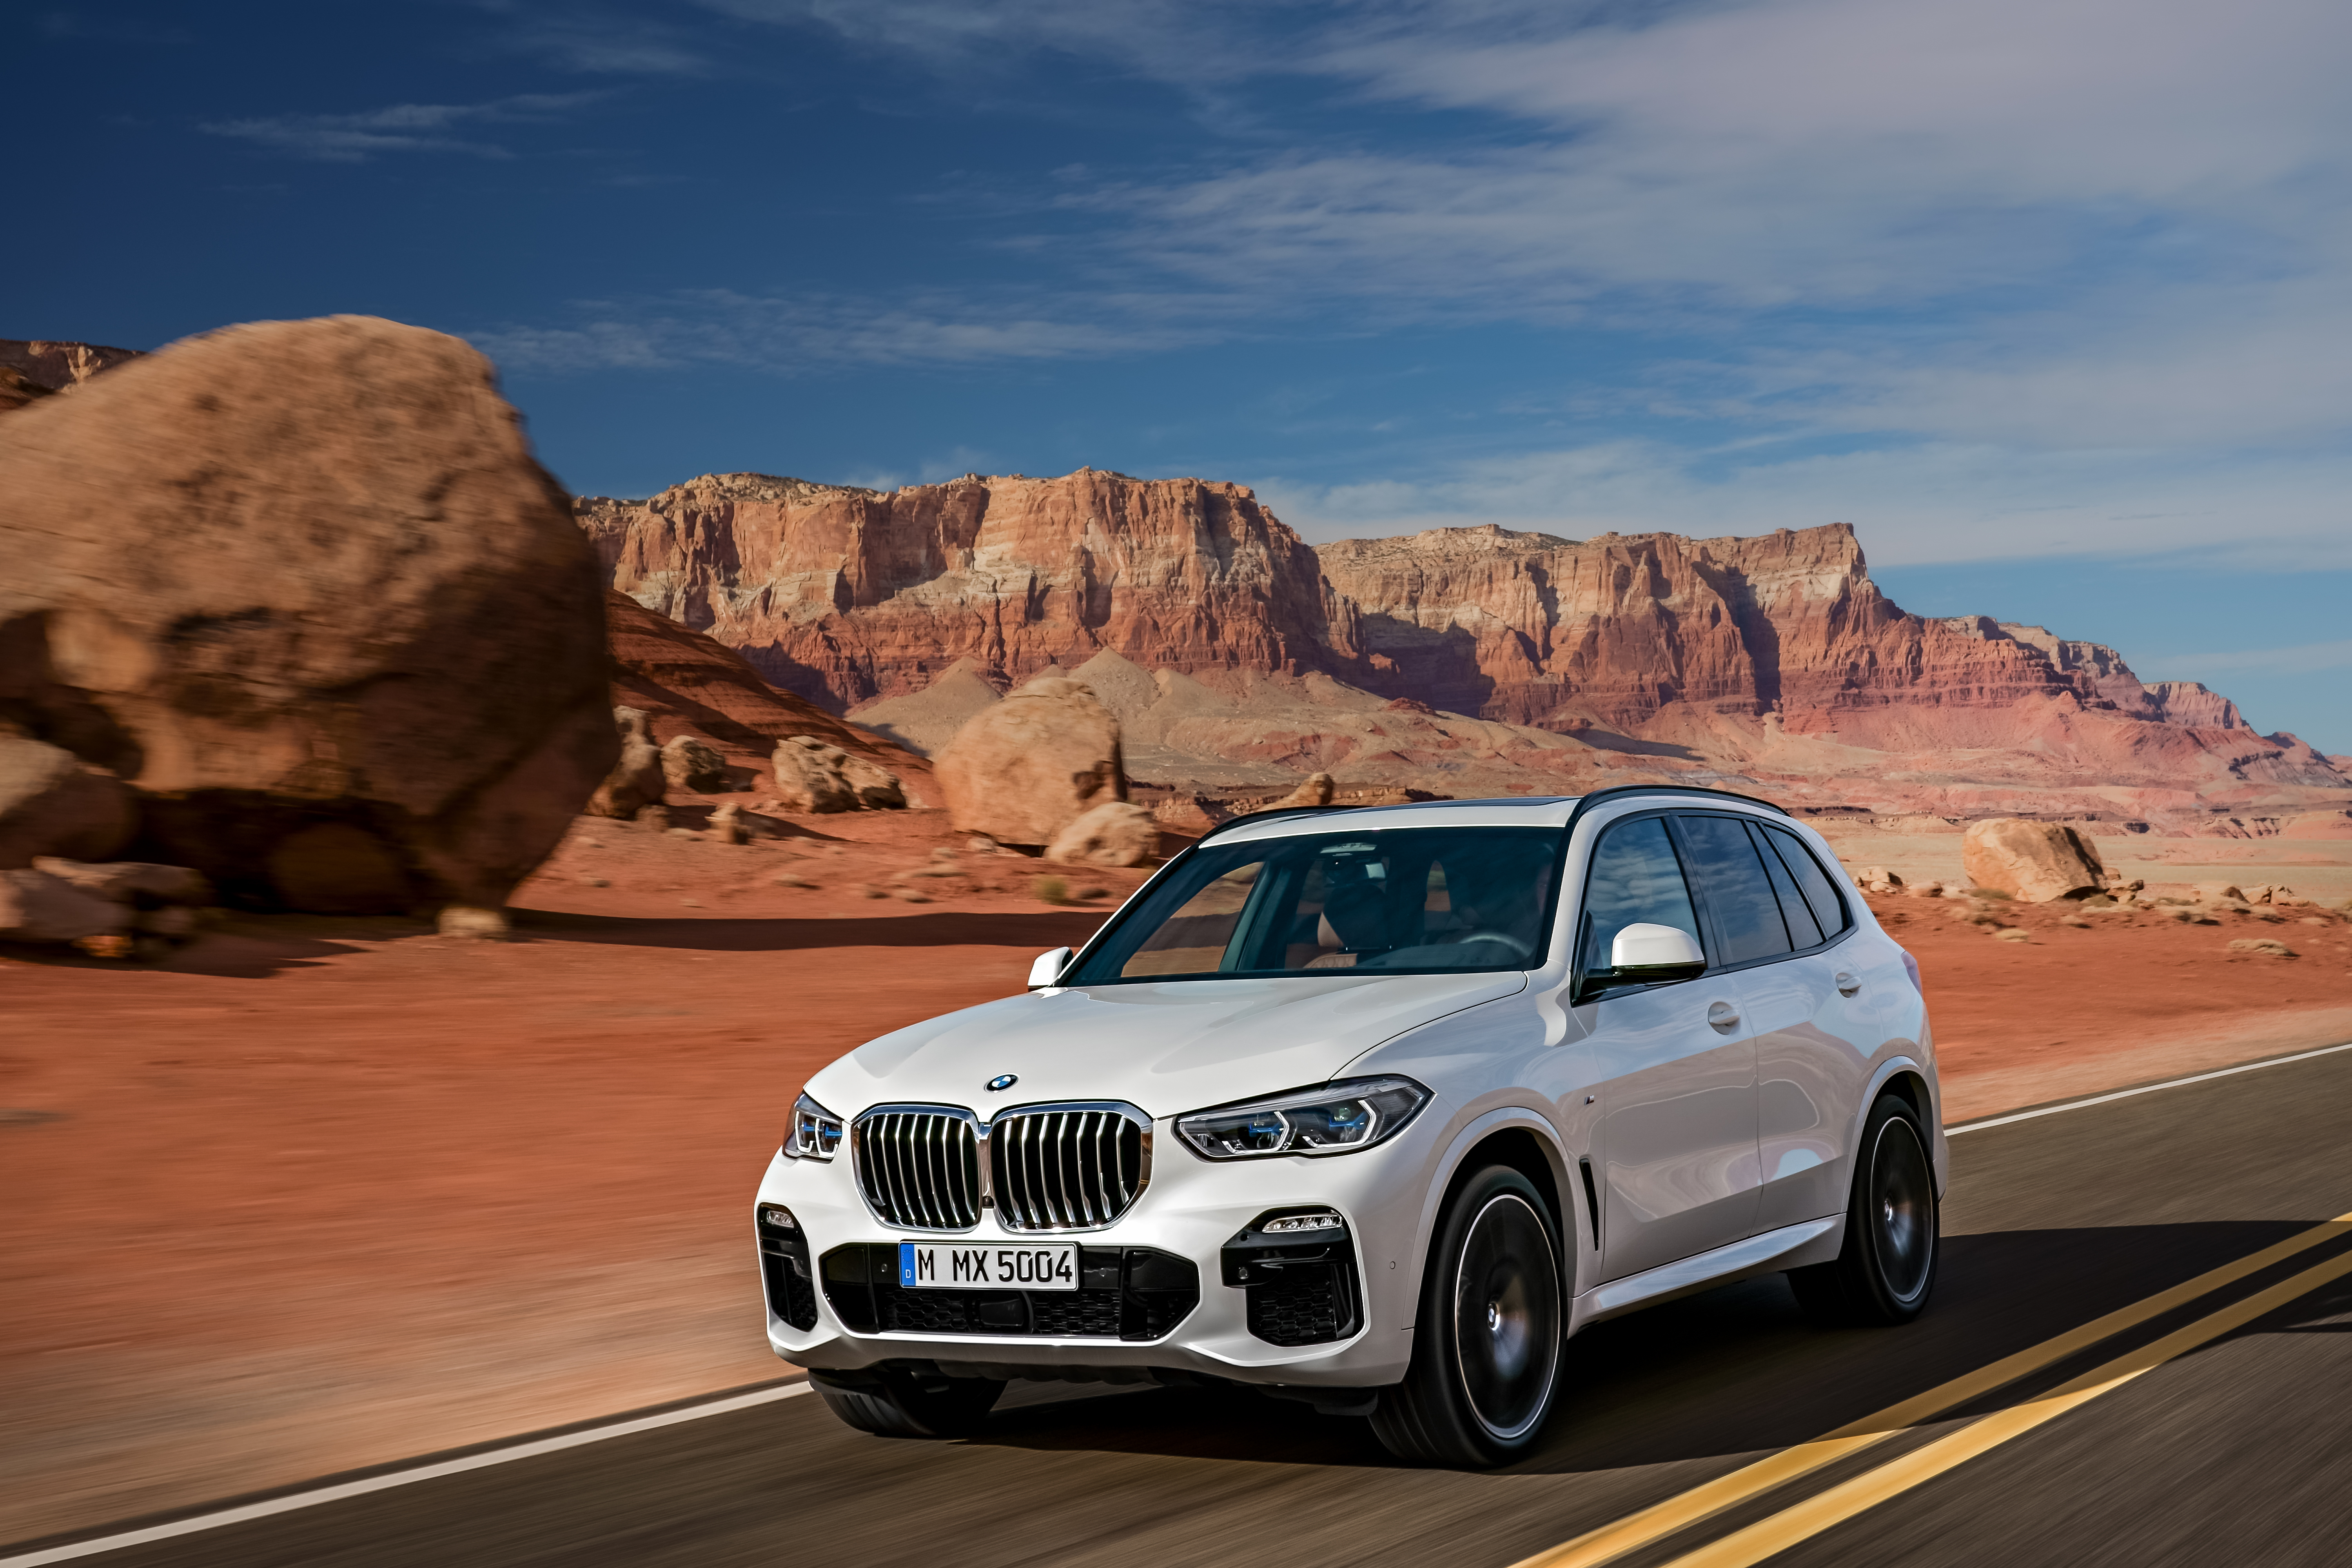 2019 BMW X5 Specifications - The Car Connection